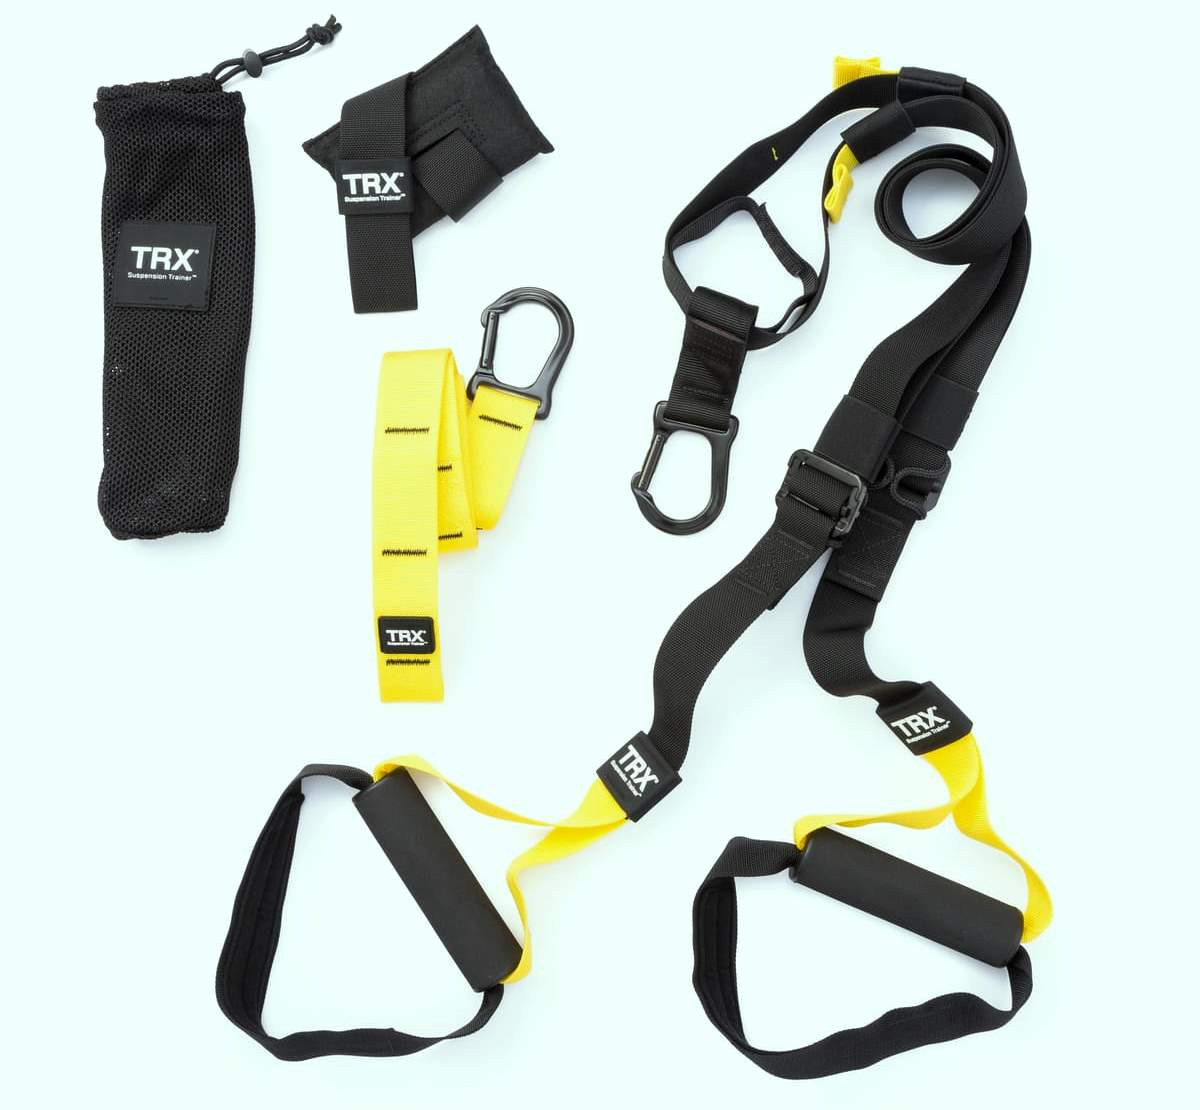 Golfer's Elbow: Inverted Row with TRX Suspension Device